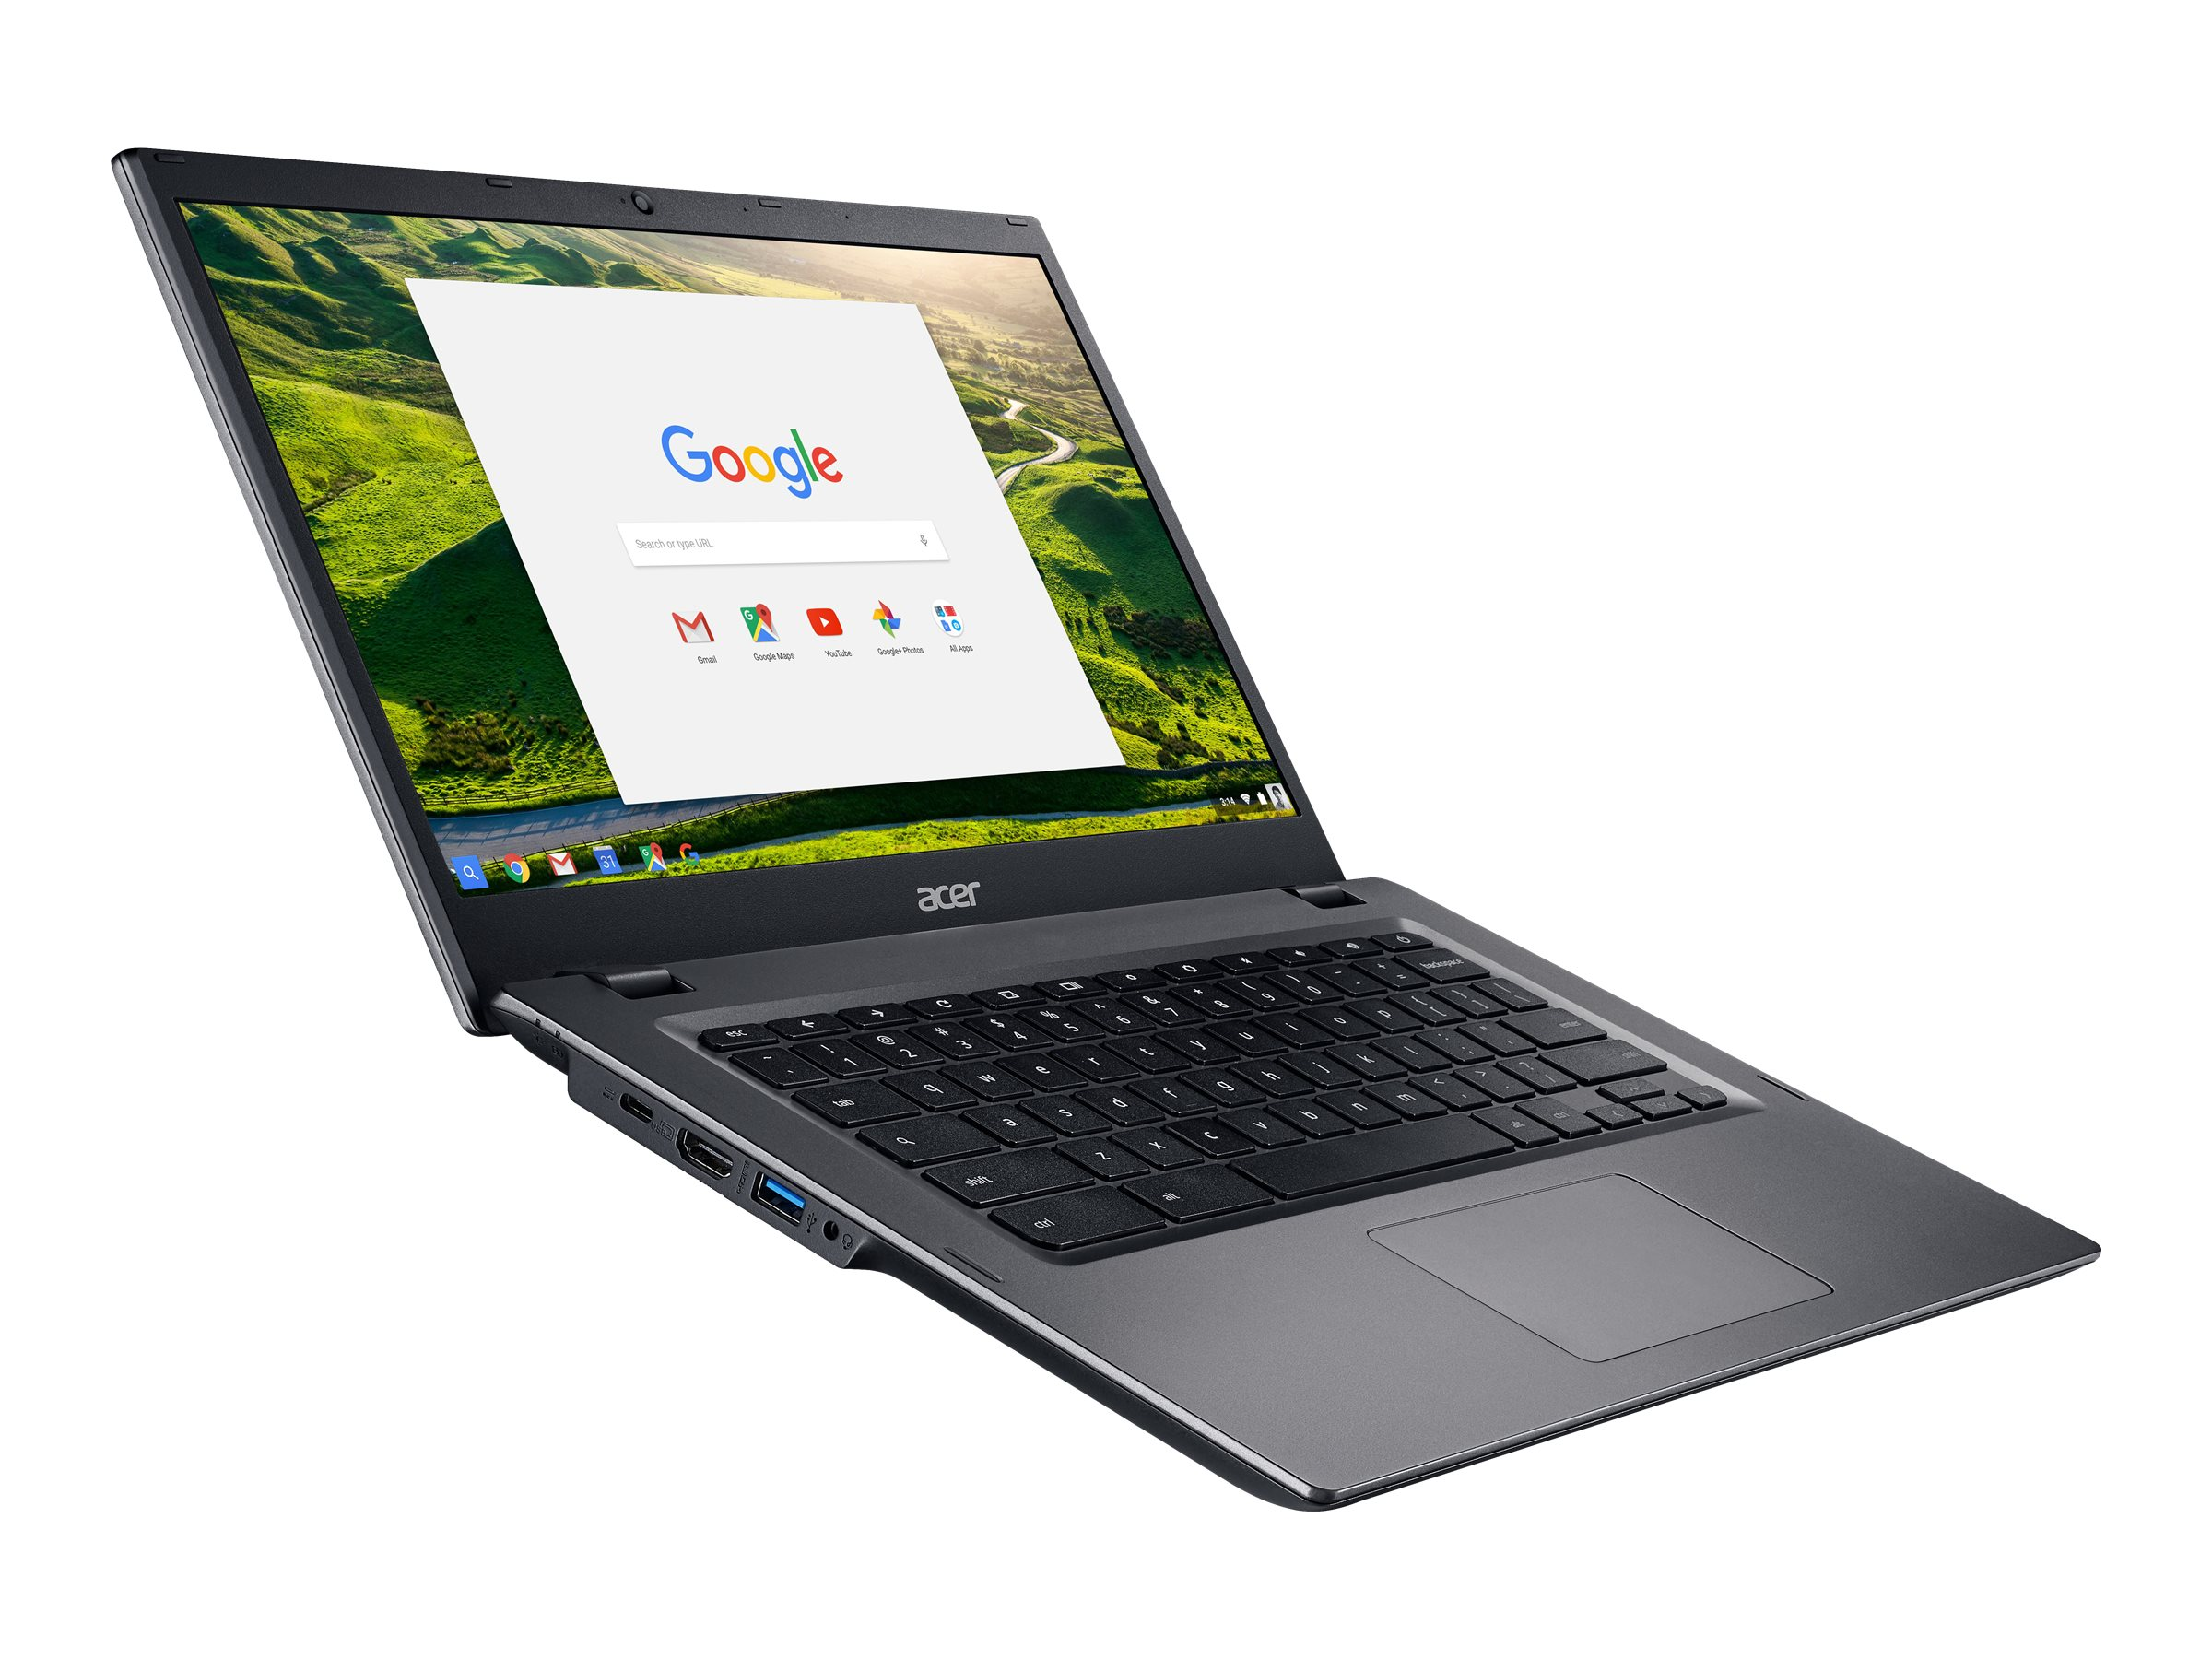 Acer Chromebook 14 CP5-471-35T4 2.3GHz Core i3 14in display, NX.GE8AA.002